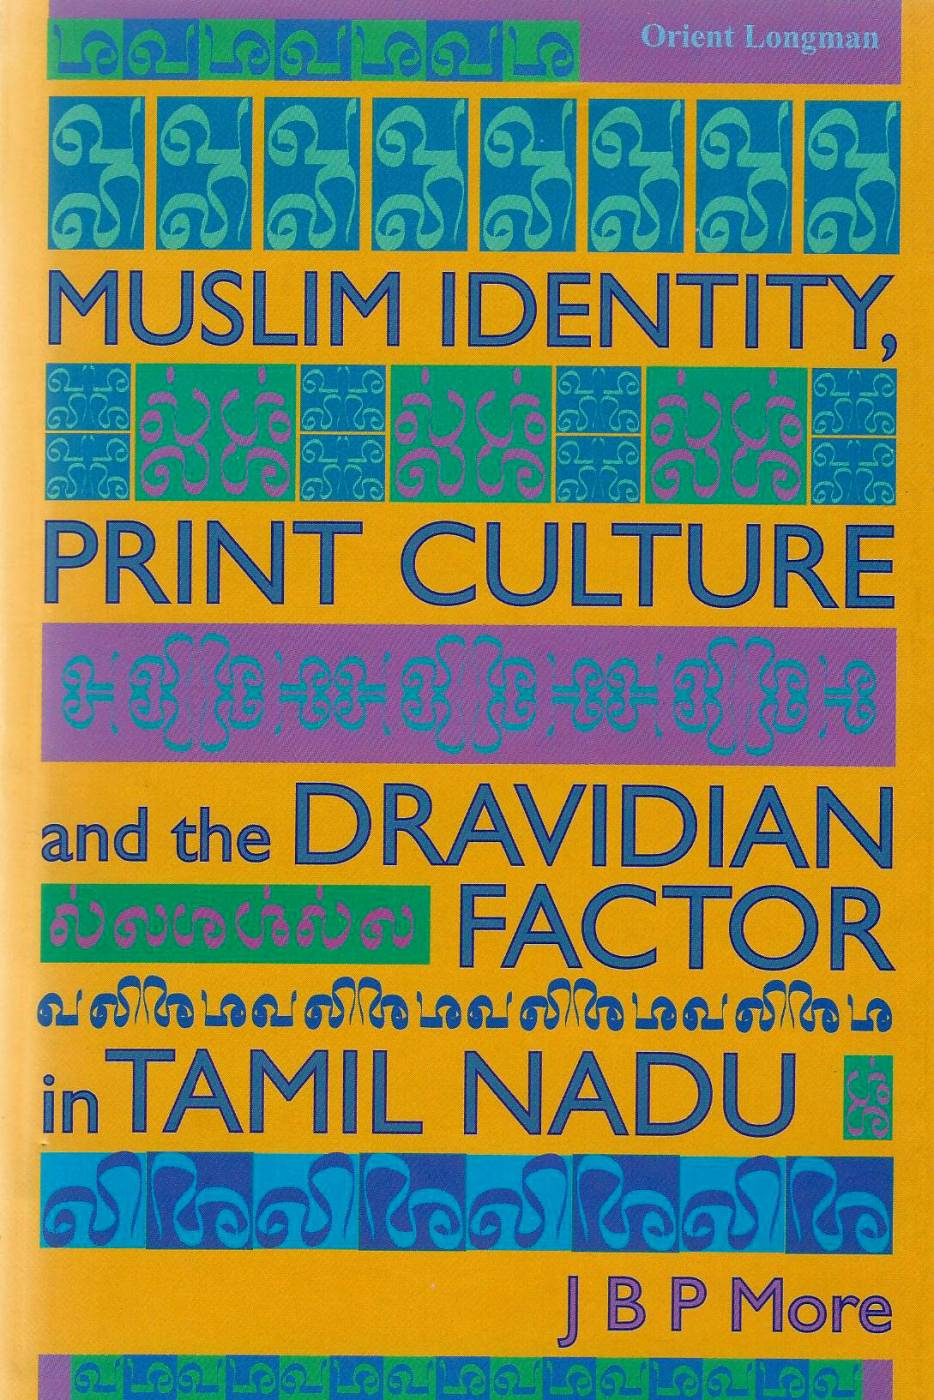 Muslim Identity, Print Culture and the Dravidian Factor in